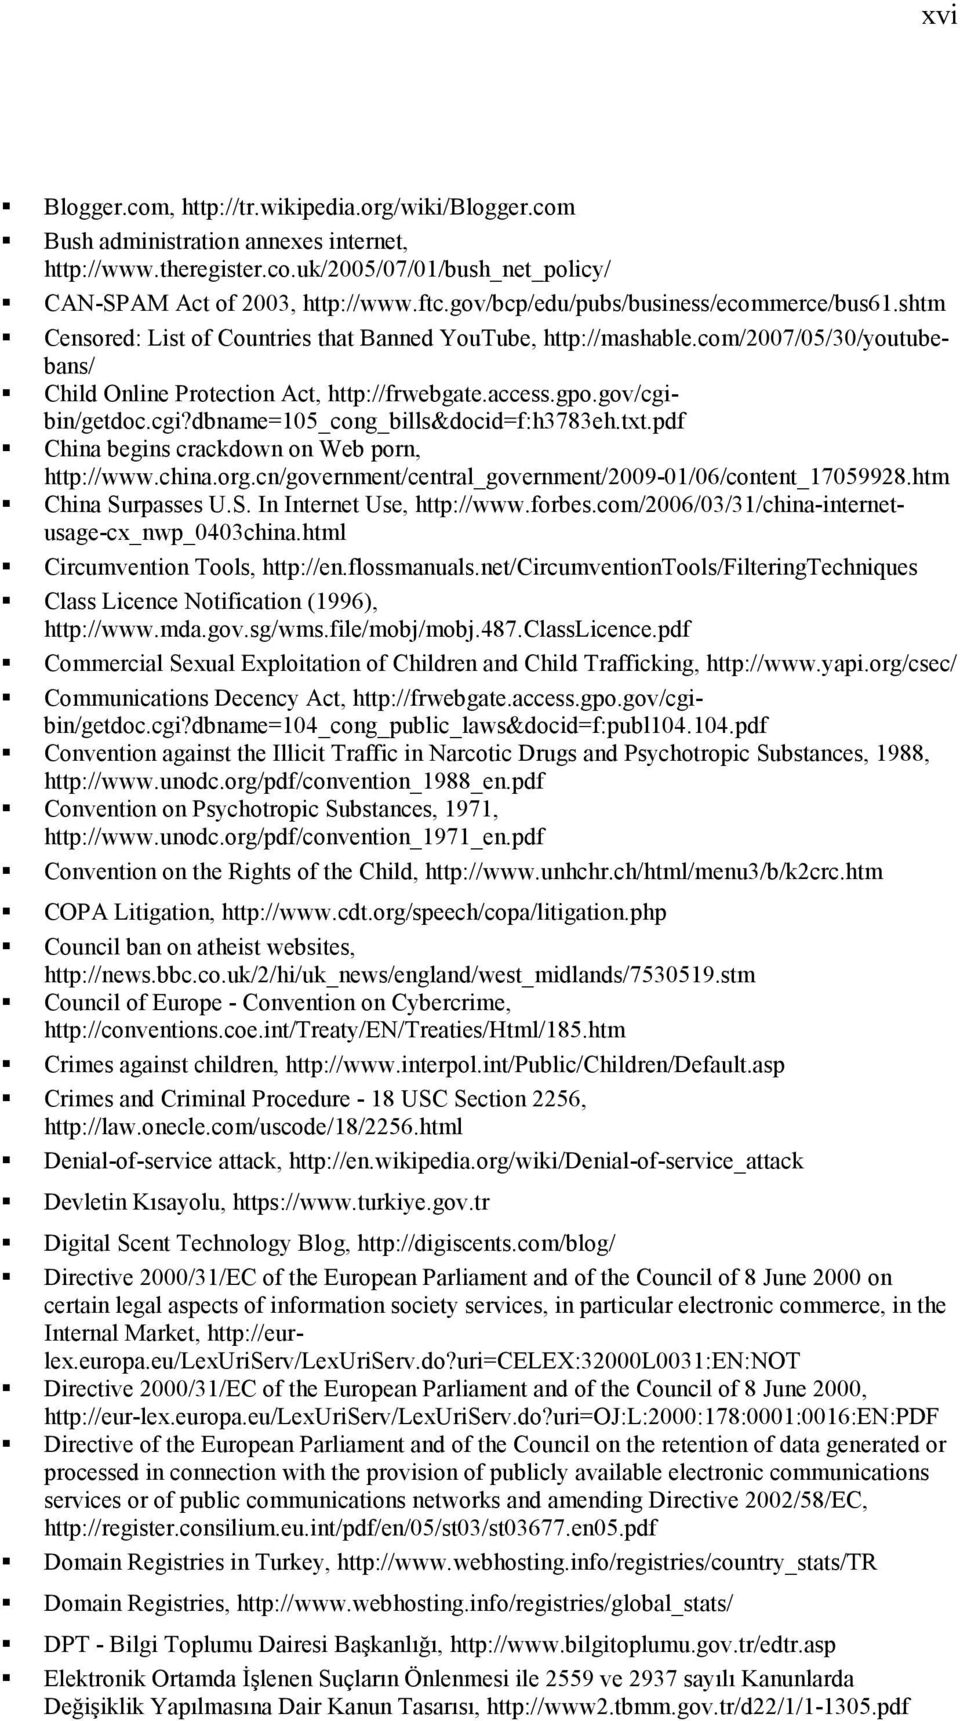 gov/cgibin/getdoc.cgi?dbname=105_cong_bills&docid=f:h3783eh.txt.pdf China begins crackdown on Web porn, http://www.china.org.cn/government/central_government/2009-01/06/content_17059928.